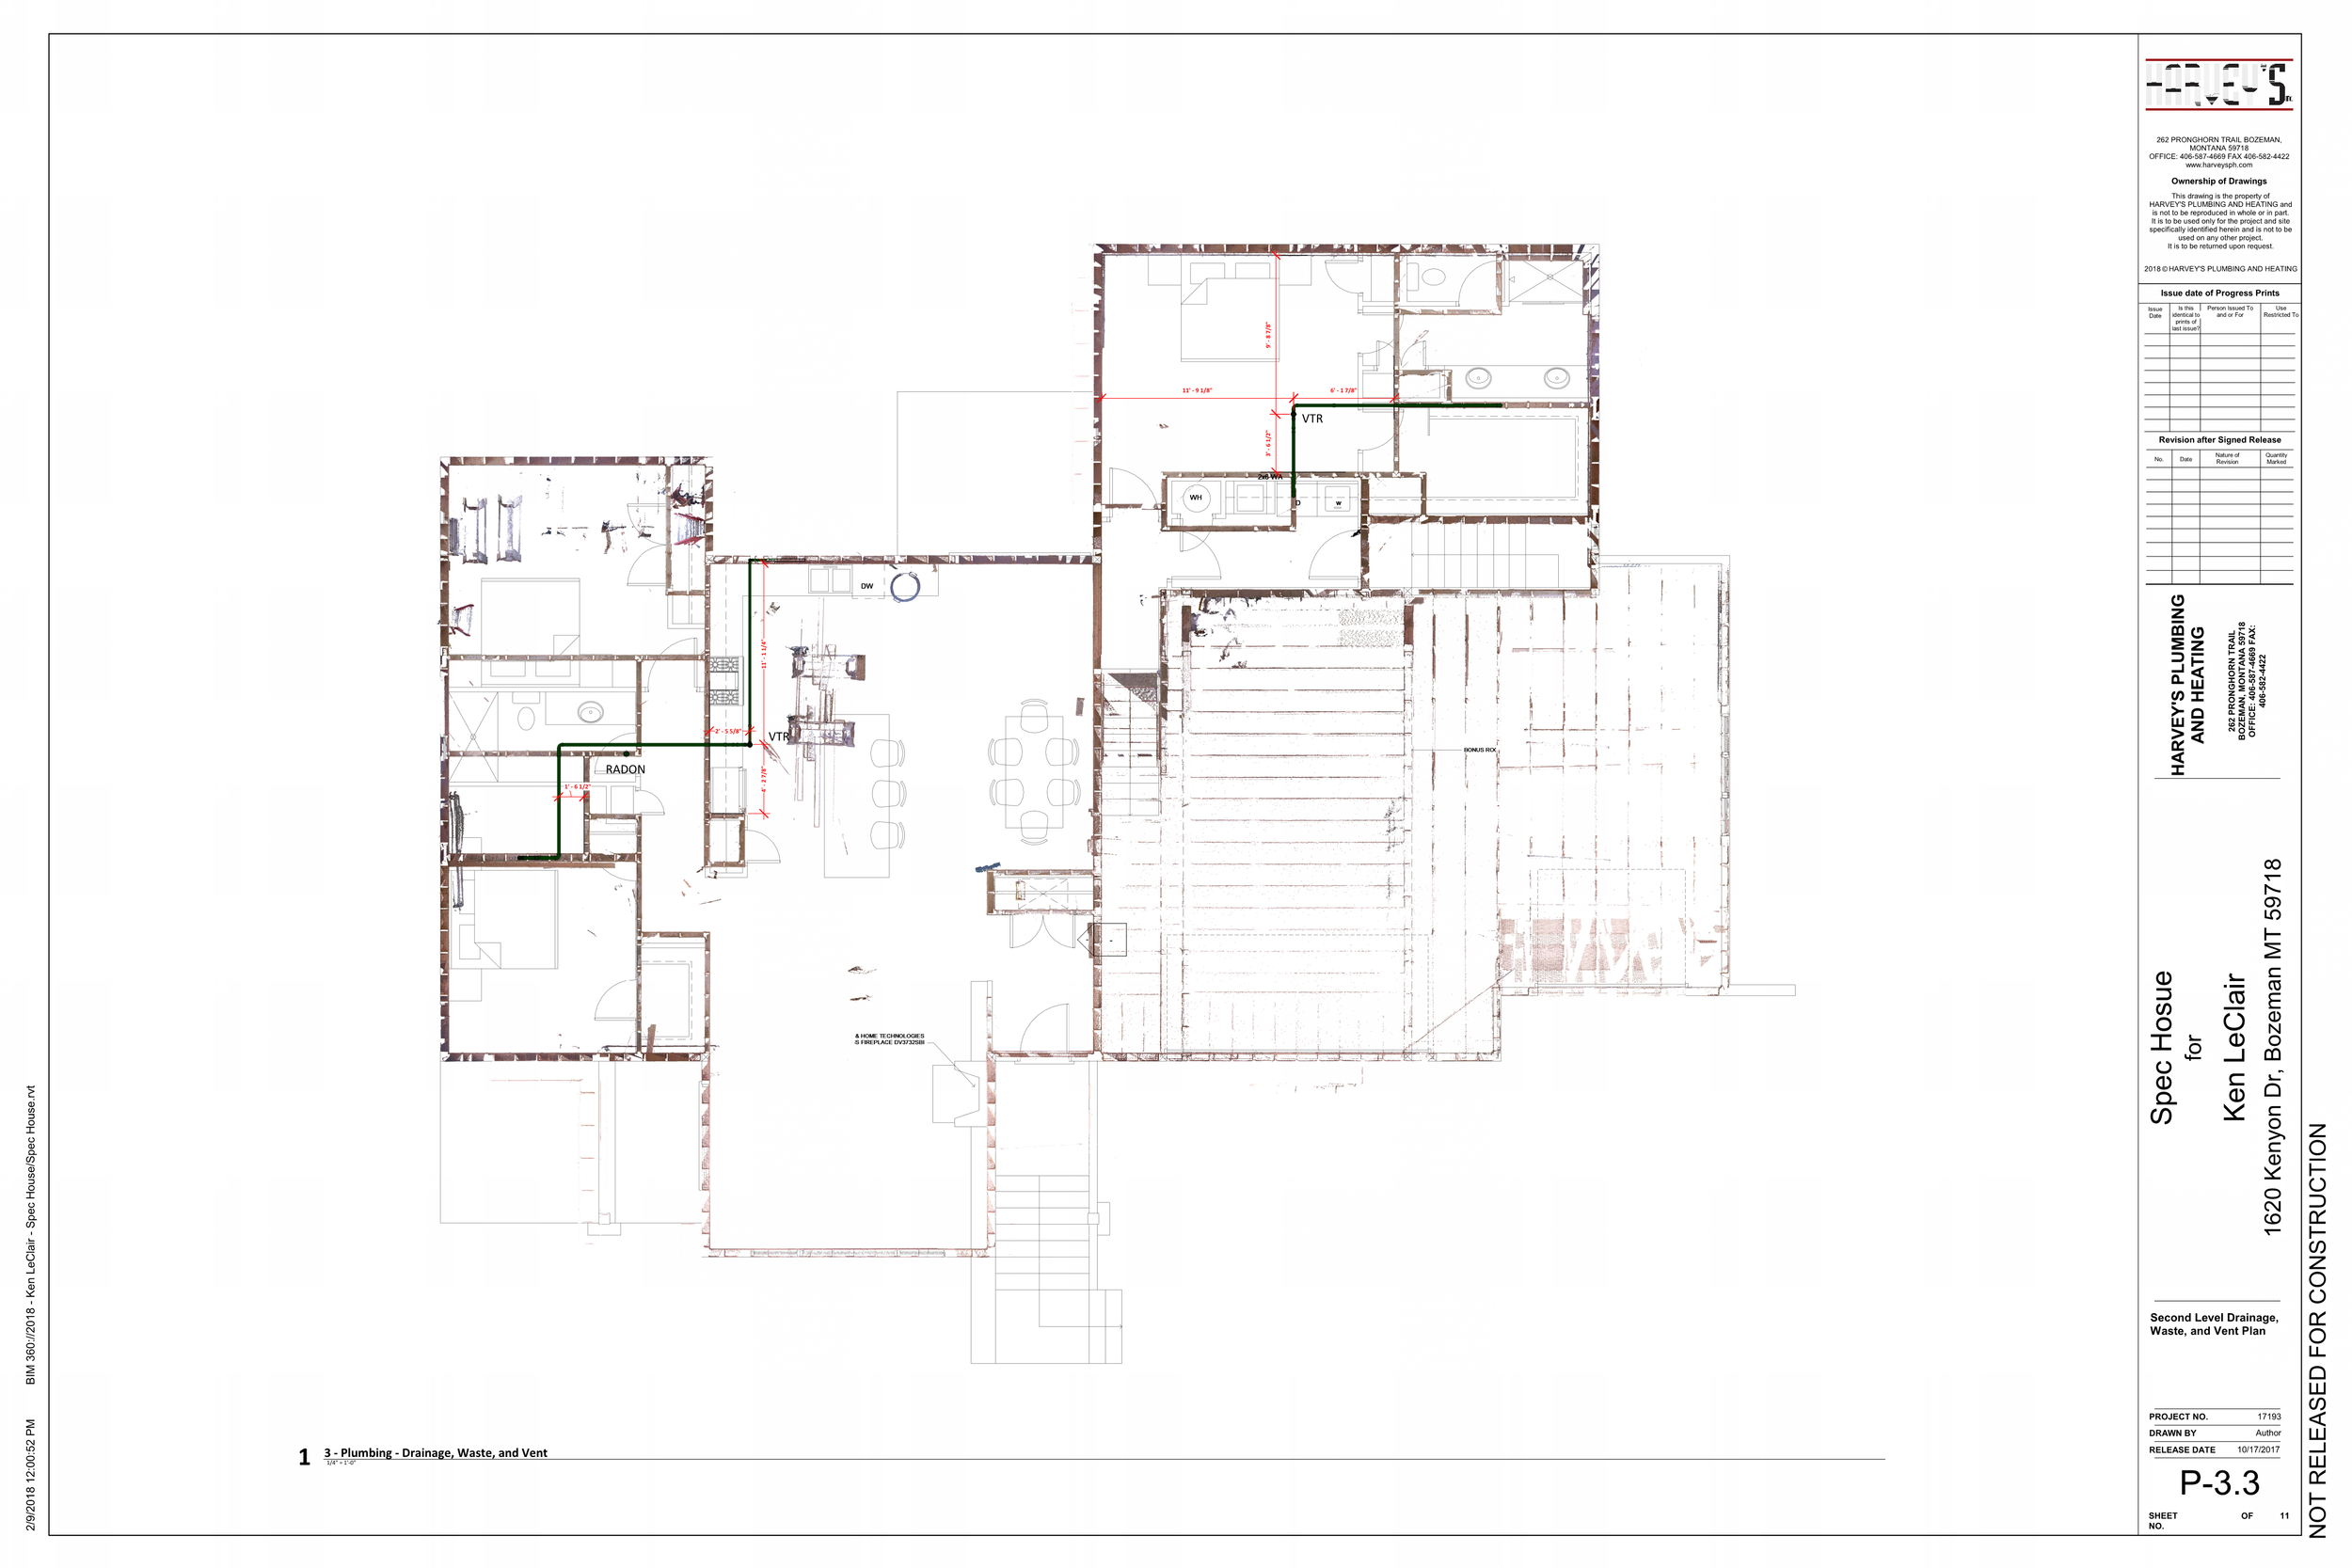 Spec House Floor Plans Page 004.png